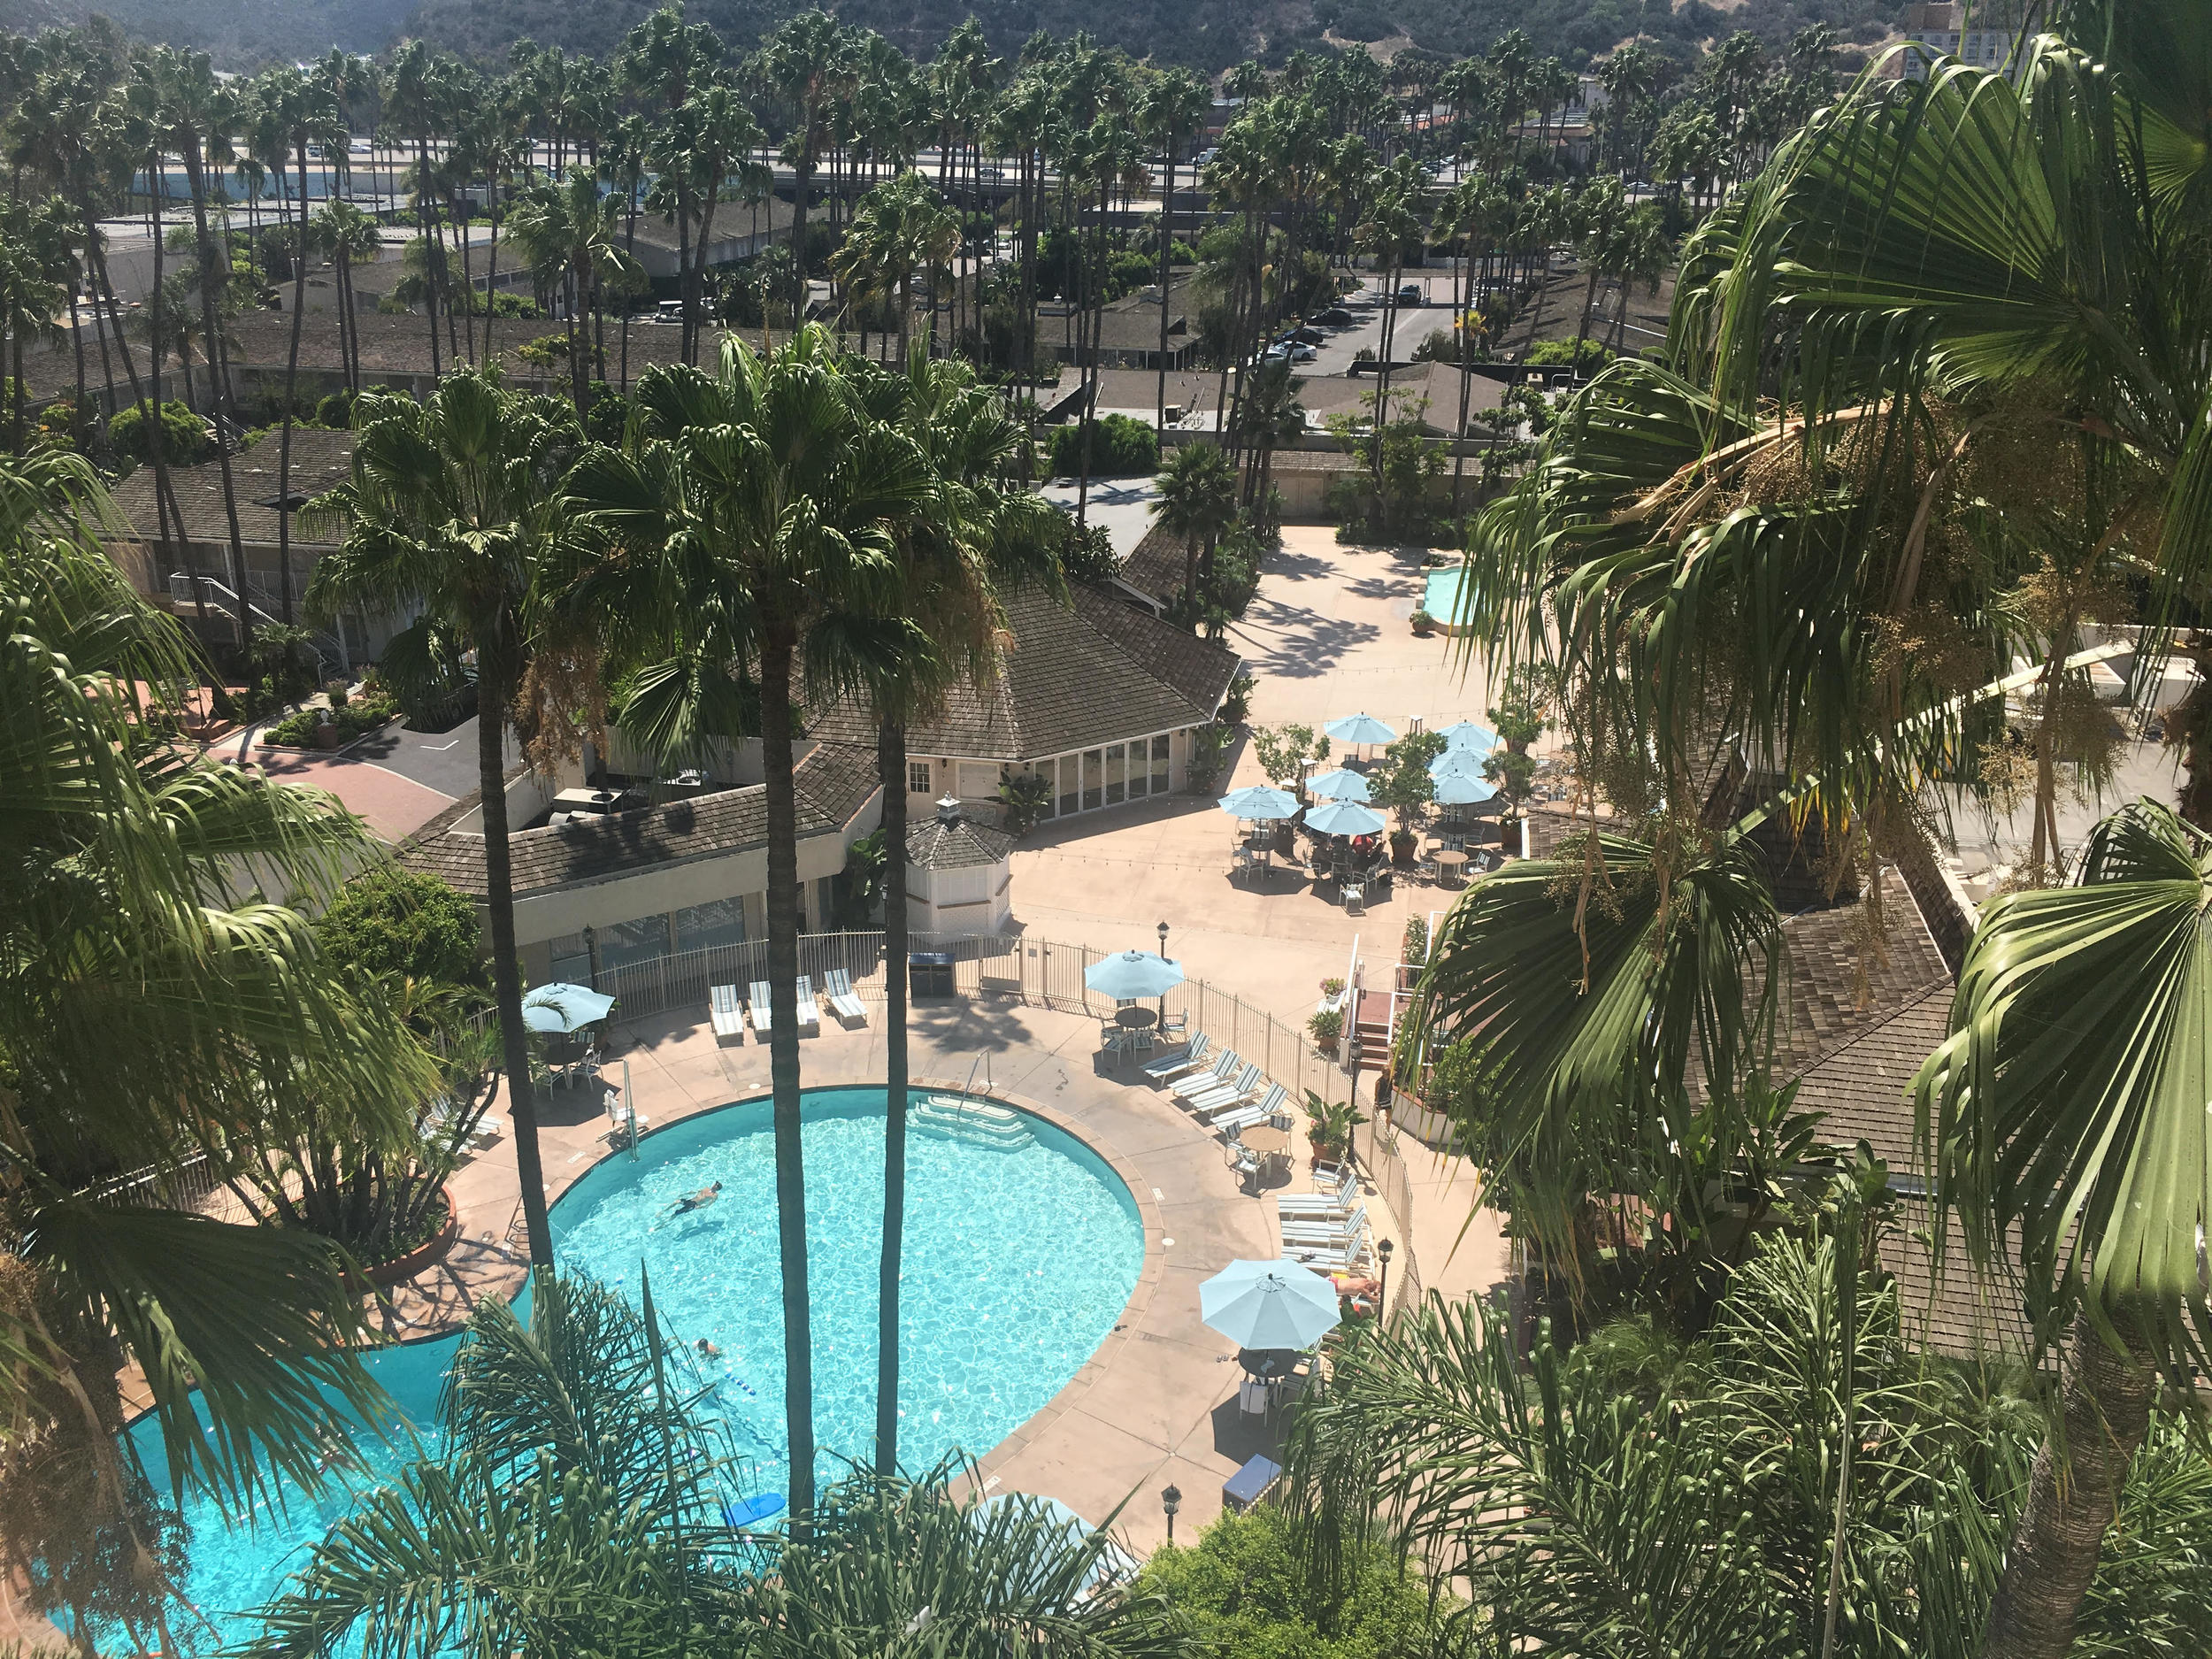 View of Town & Country Hotel San Diego